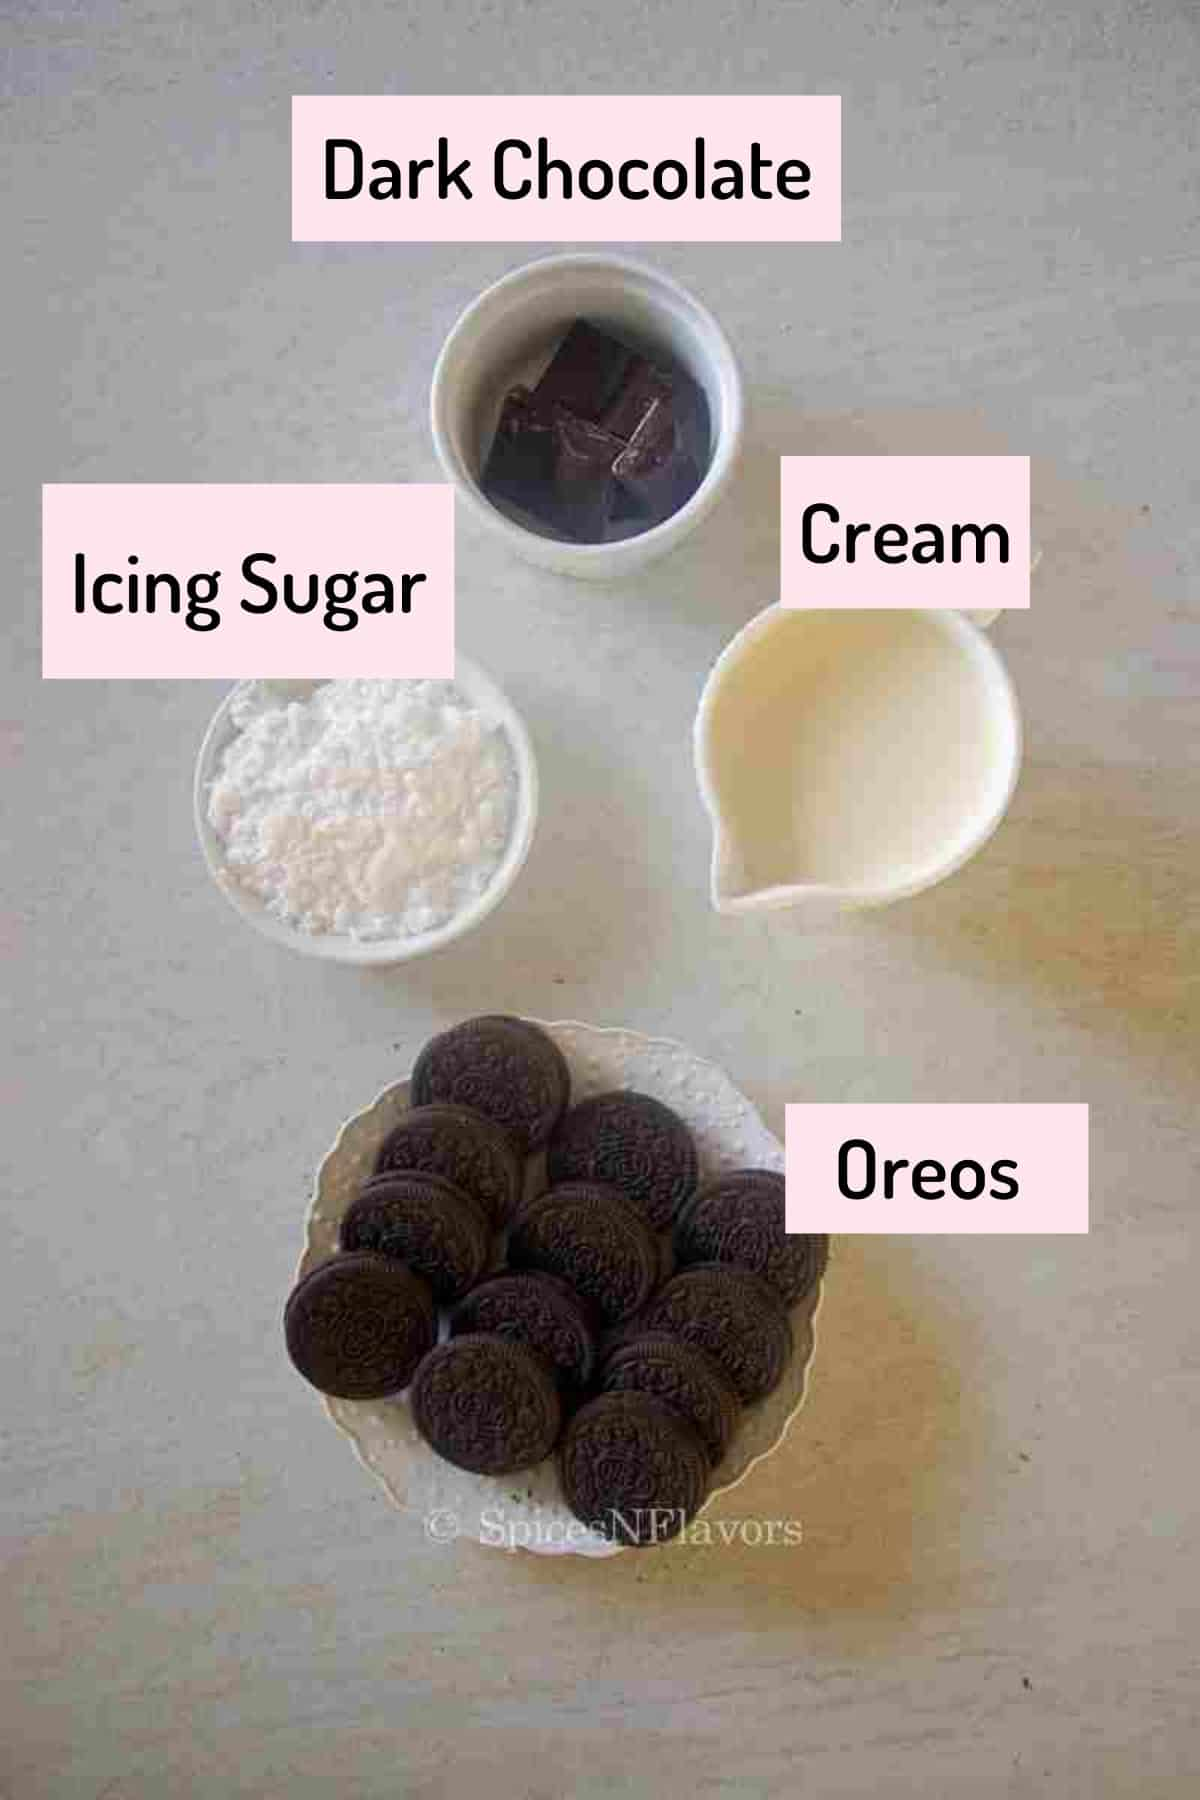 ingredients needed to make the mousse arranged in cups and plates